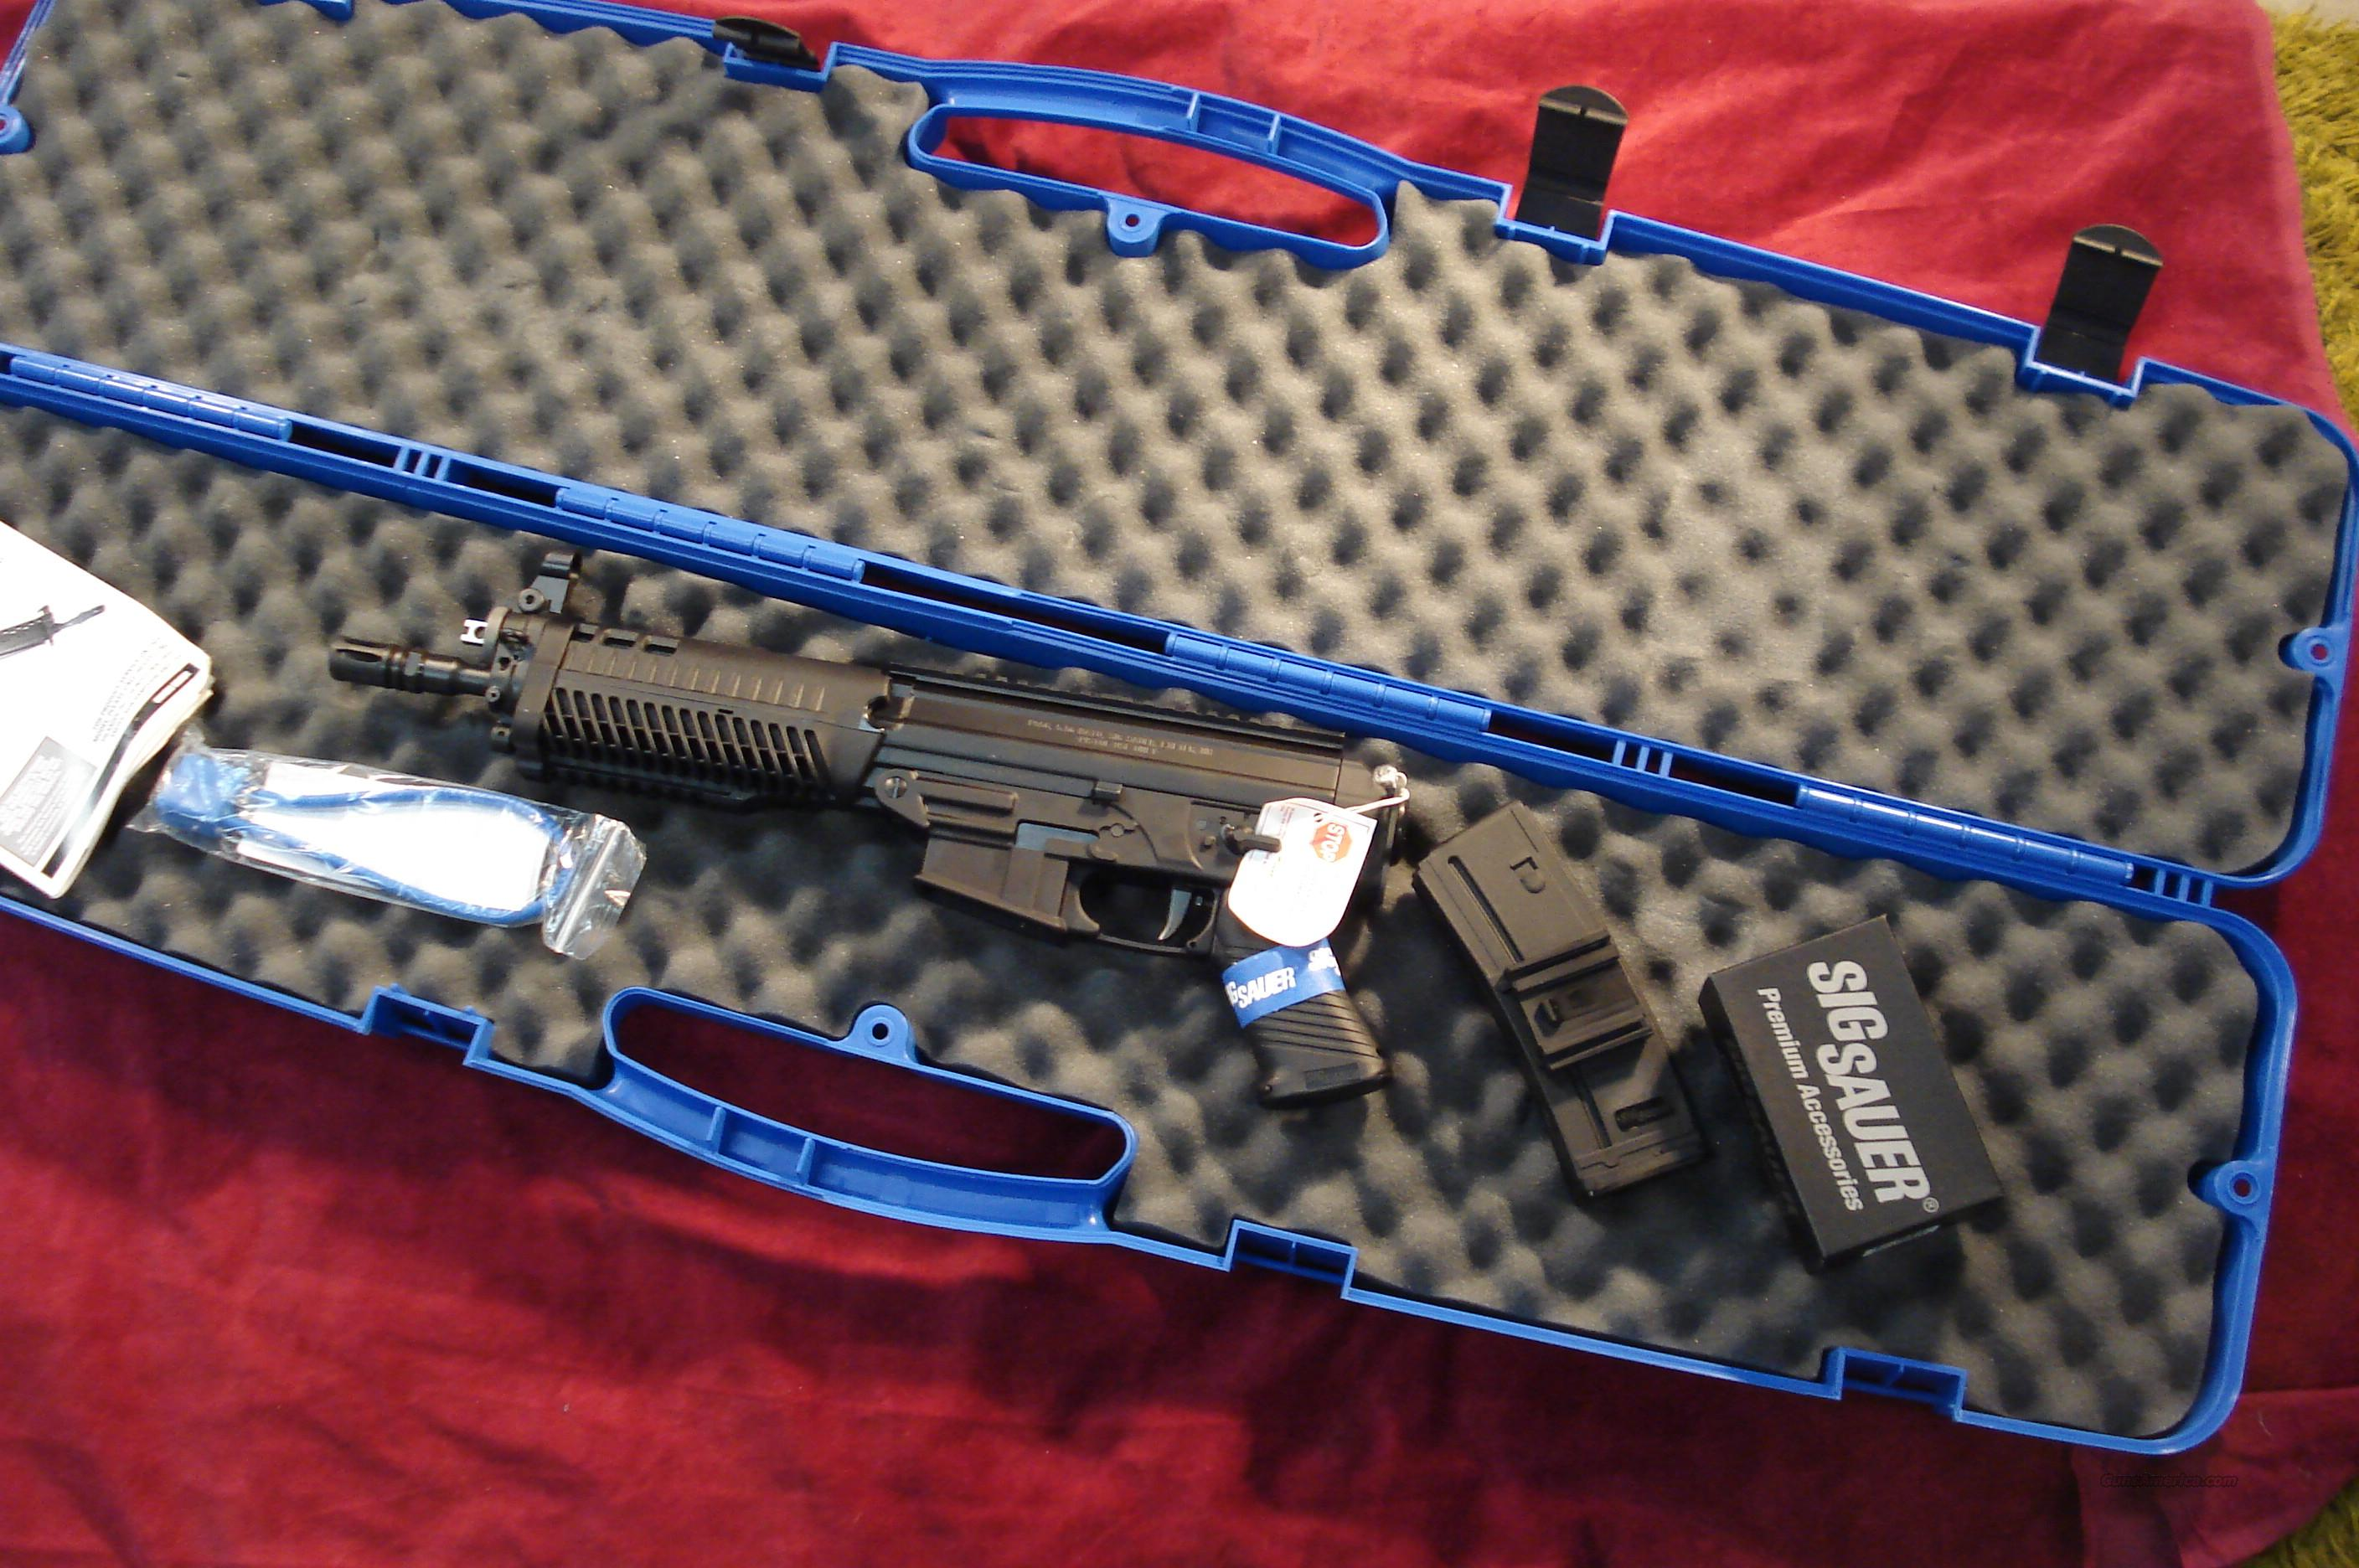 SIG SAUER 556 PISTOL WITH SIG MINI RED DOT SIGHT NEW   Guns > Pistols > Sig - Sauer/Sigarms Pistols > 556